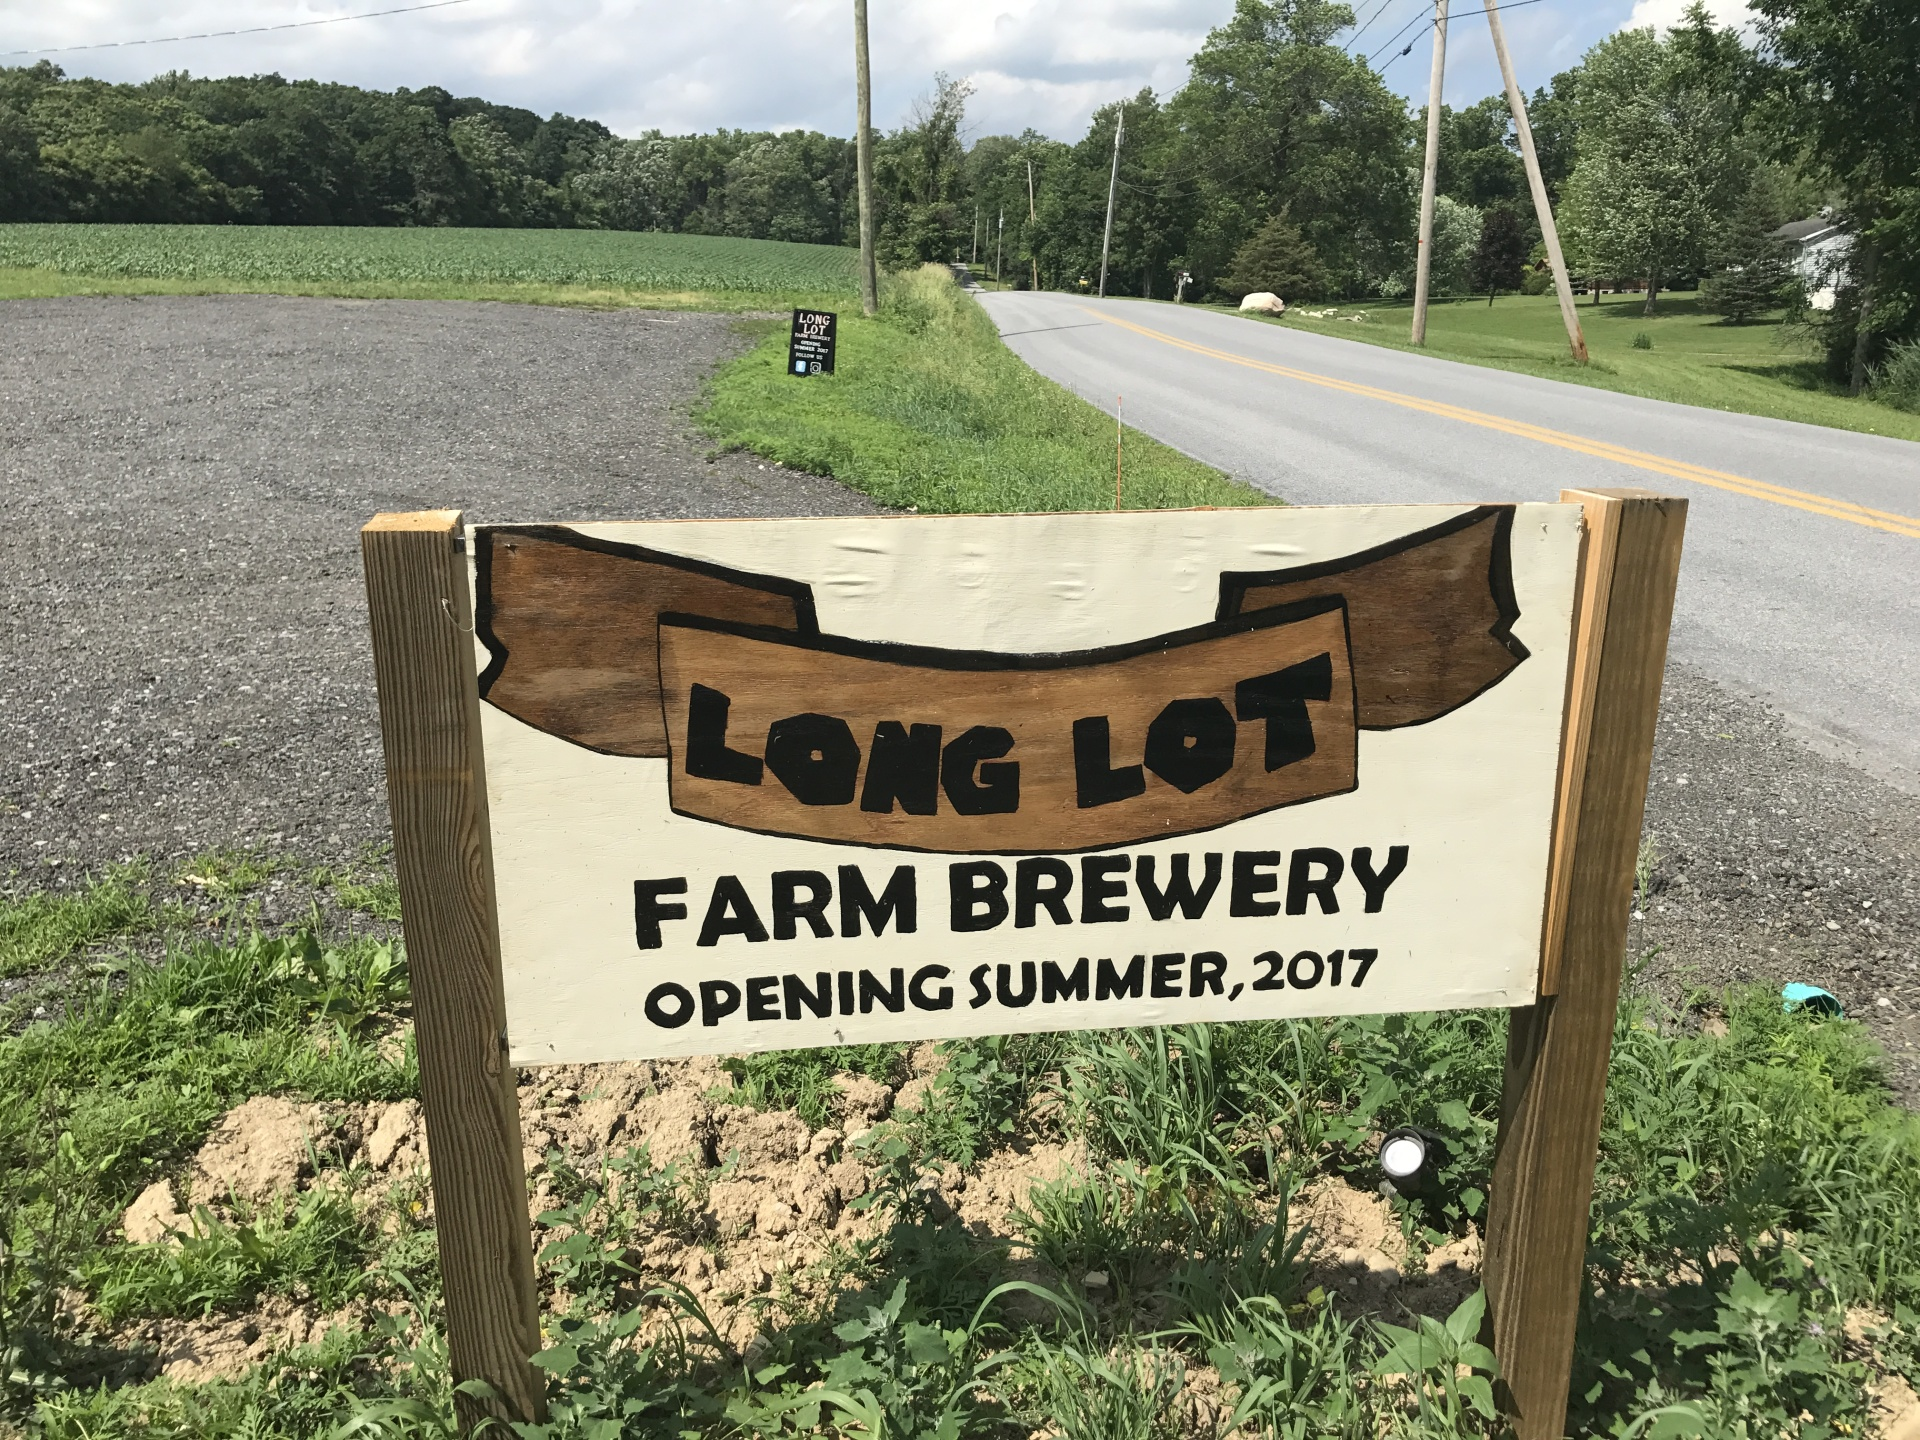 Long Lot Farm Brewery